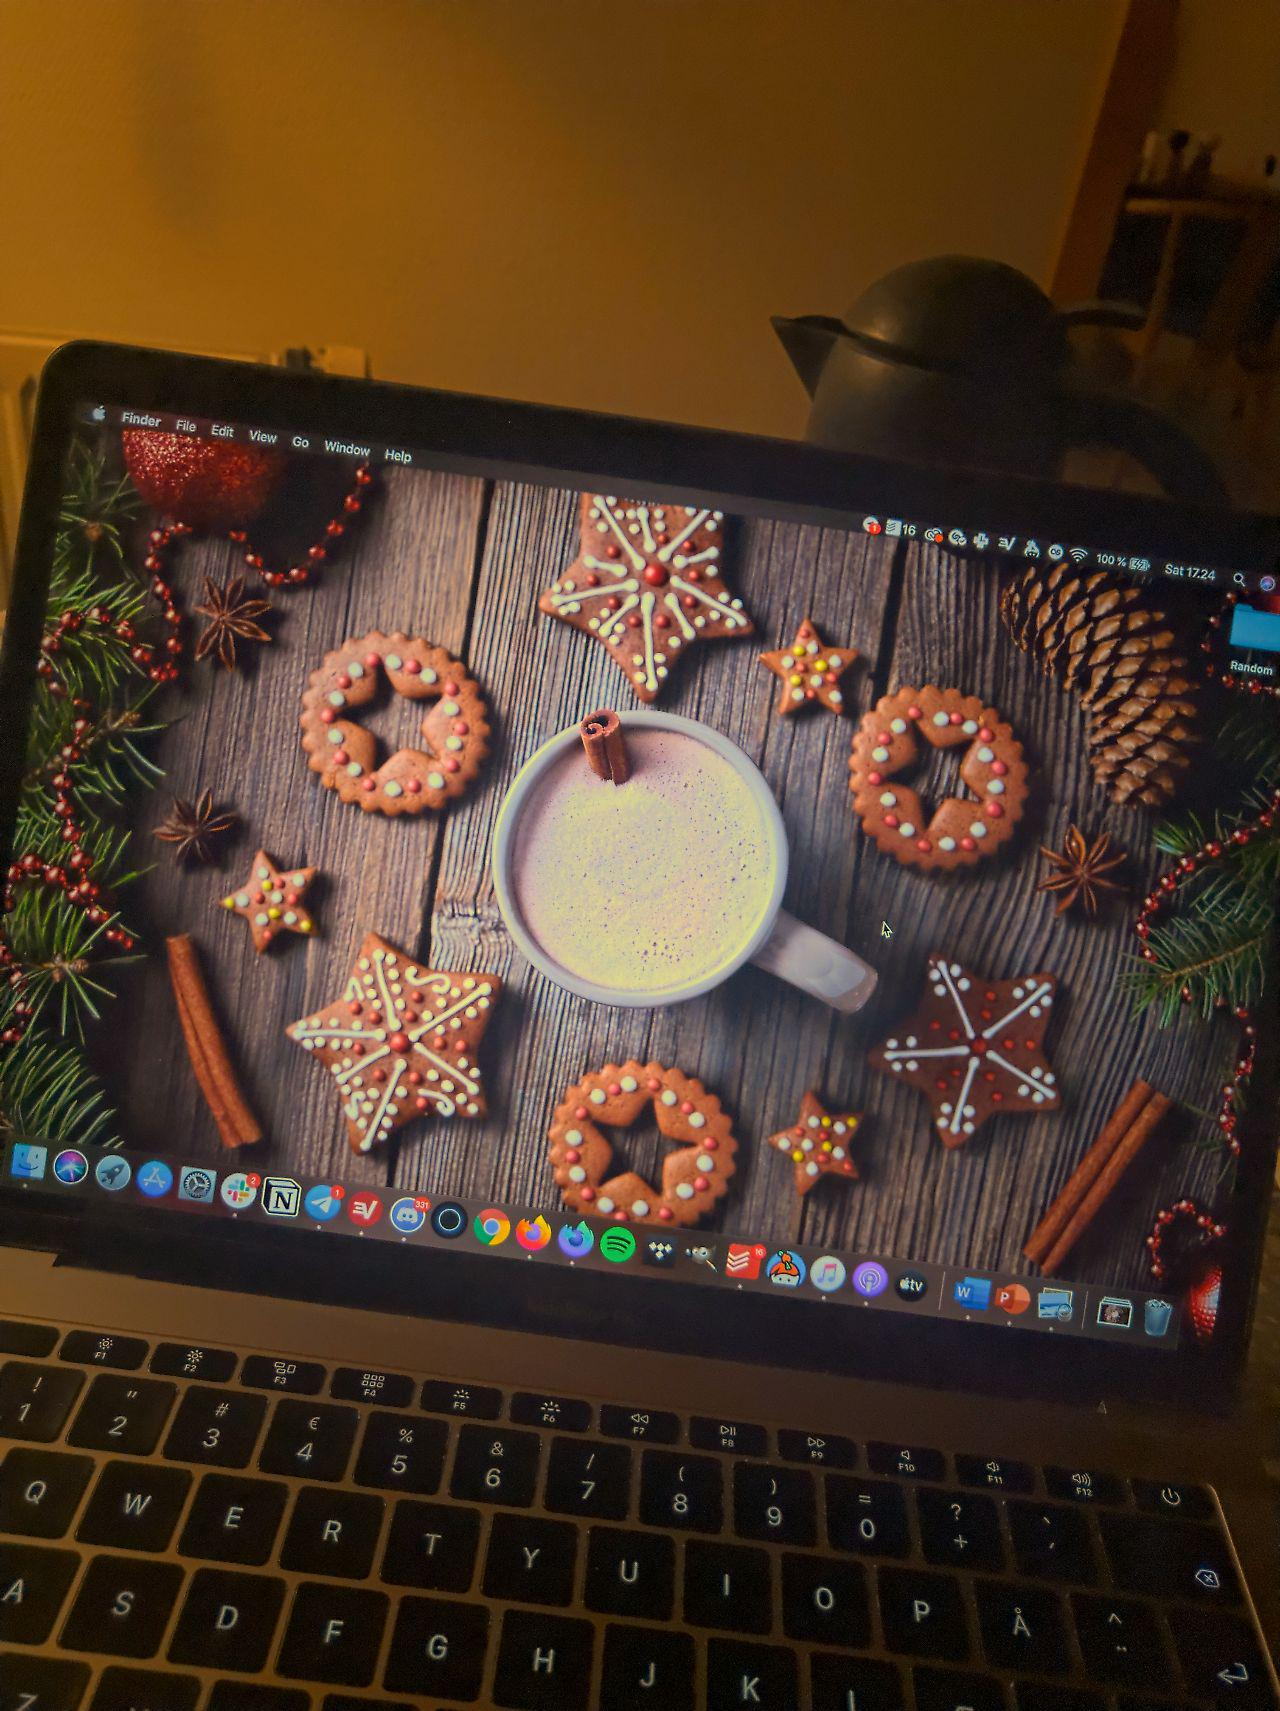 Christmas cookies and hot chocolate as wallpaper on laptop